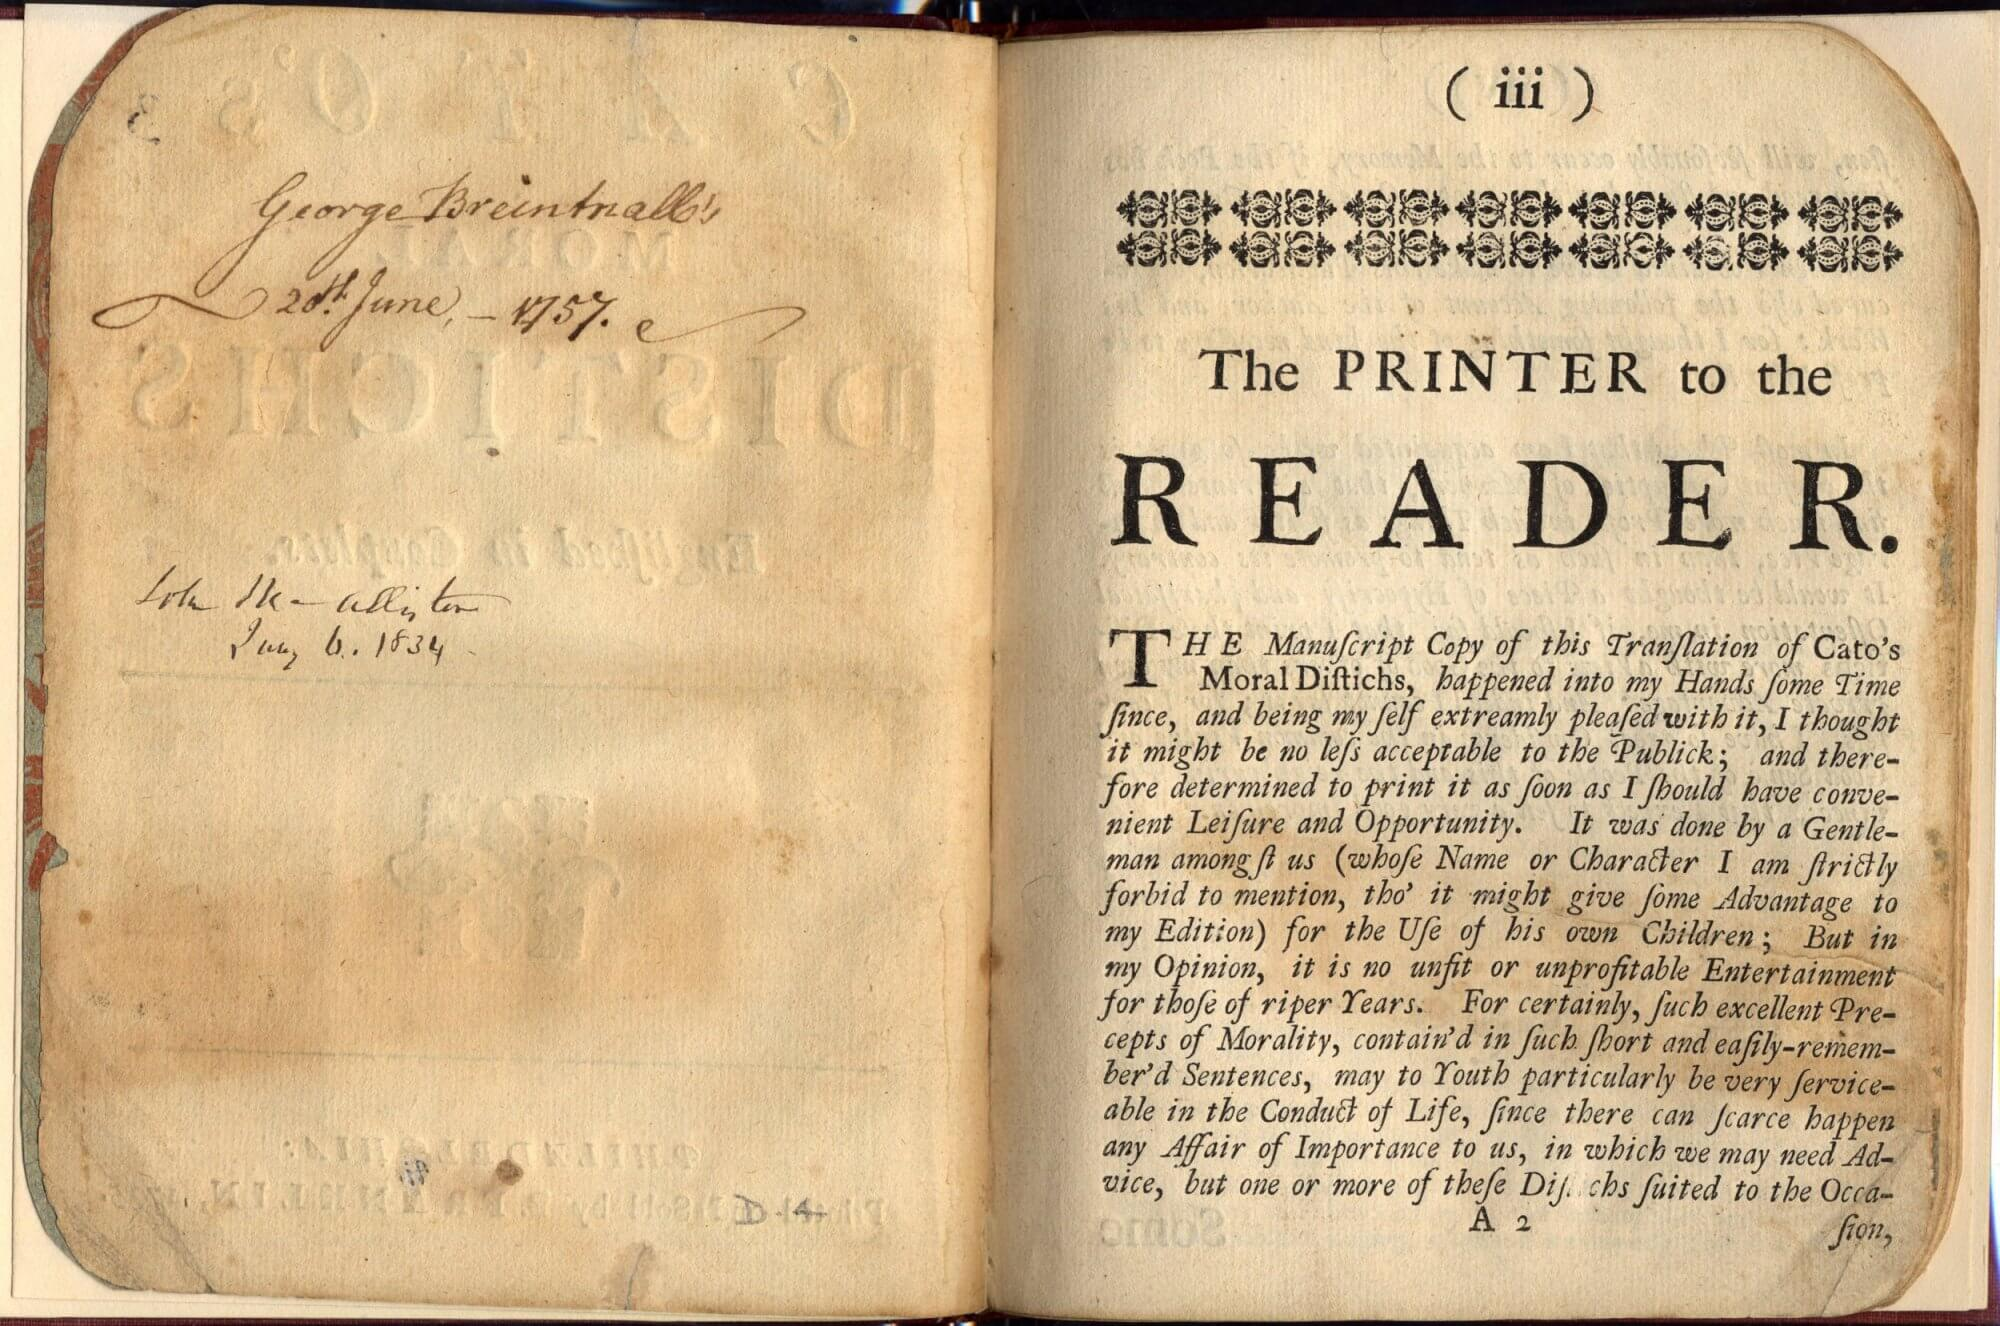 On the blank page shown here, you can see the raised letters from the impression of the type used for the title page.